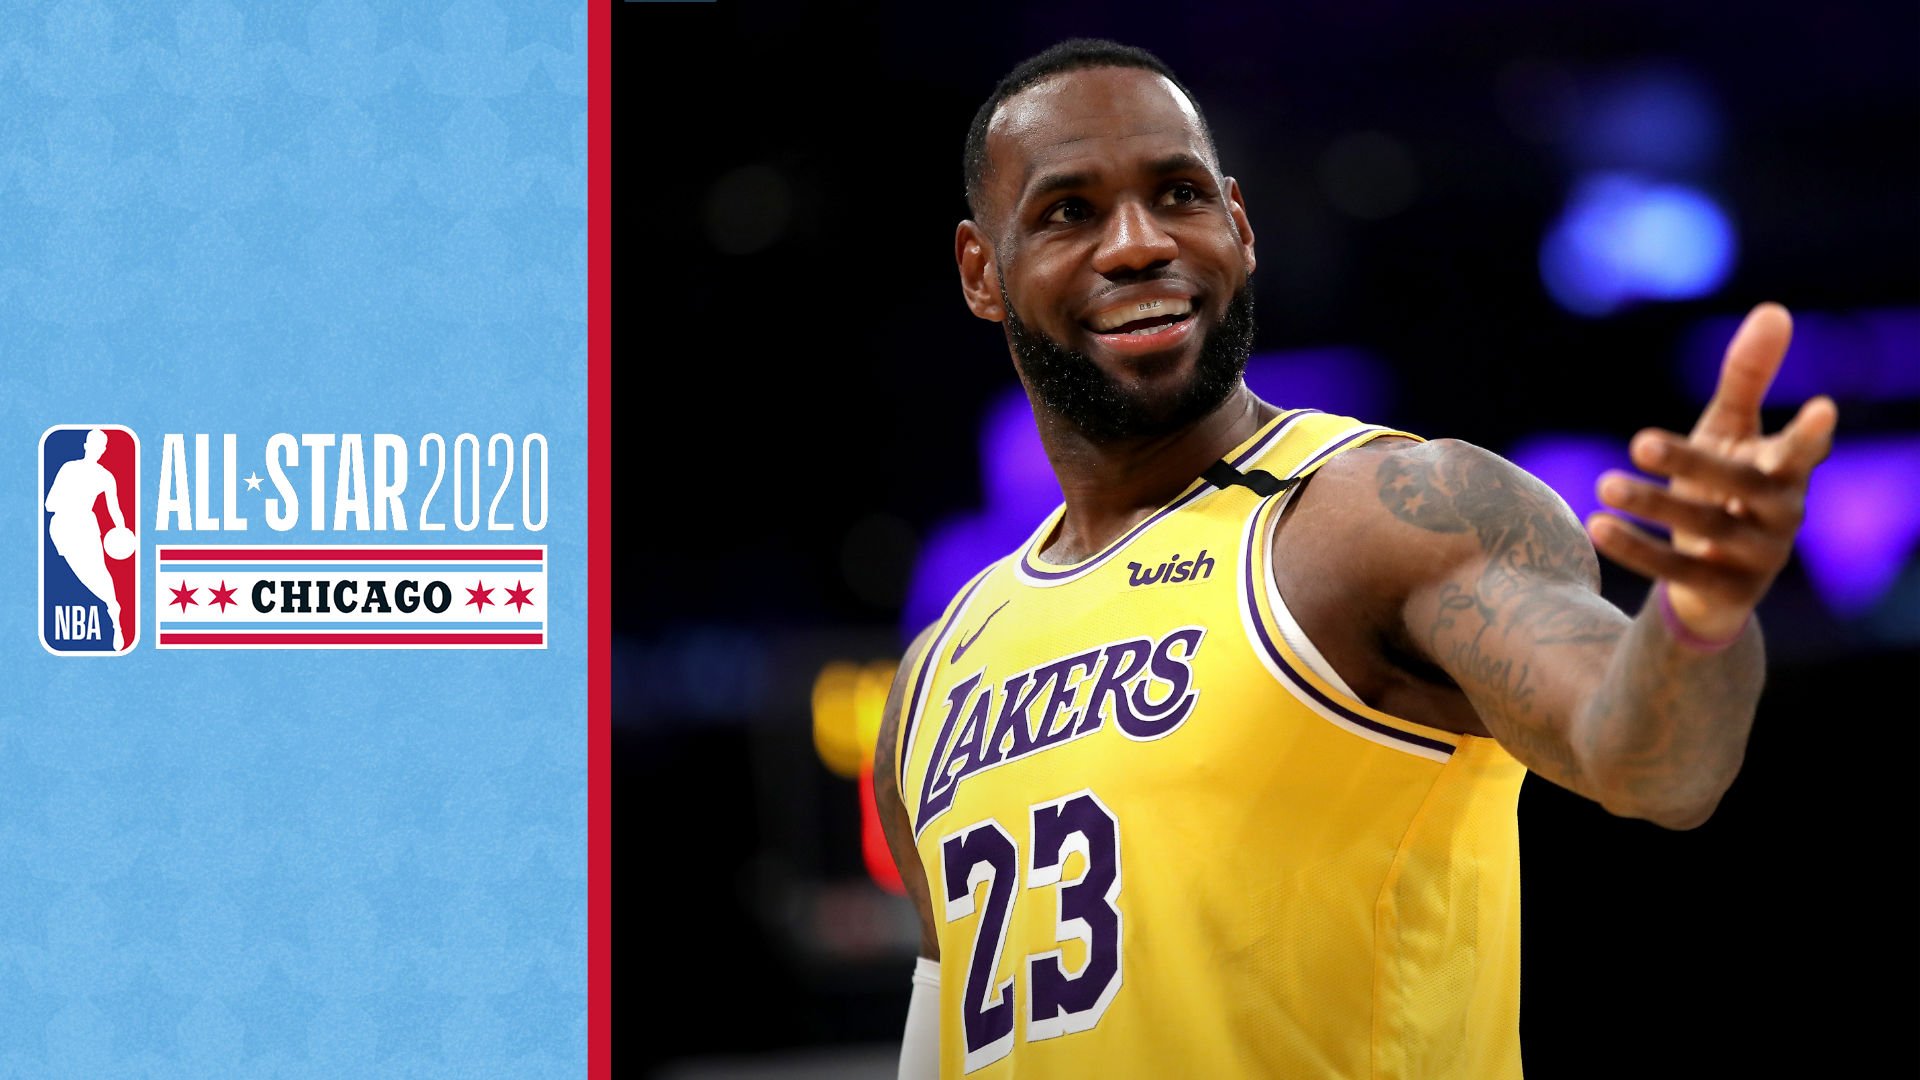 Nba All Star Game 2020 What Has And Hasn T Changed In The